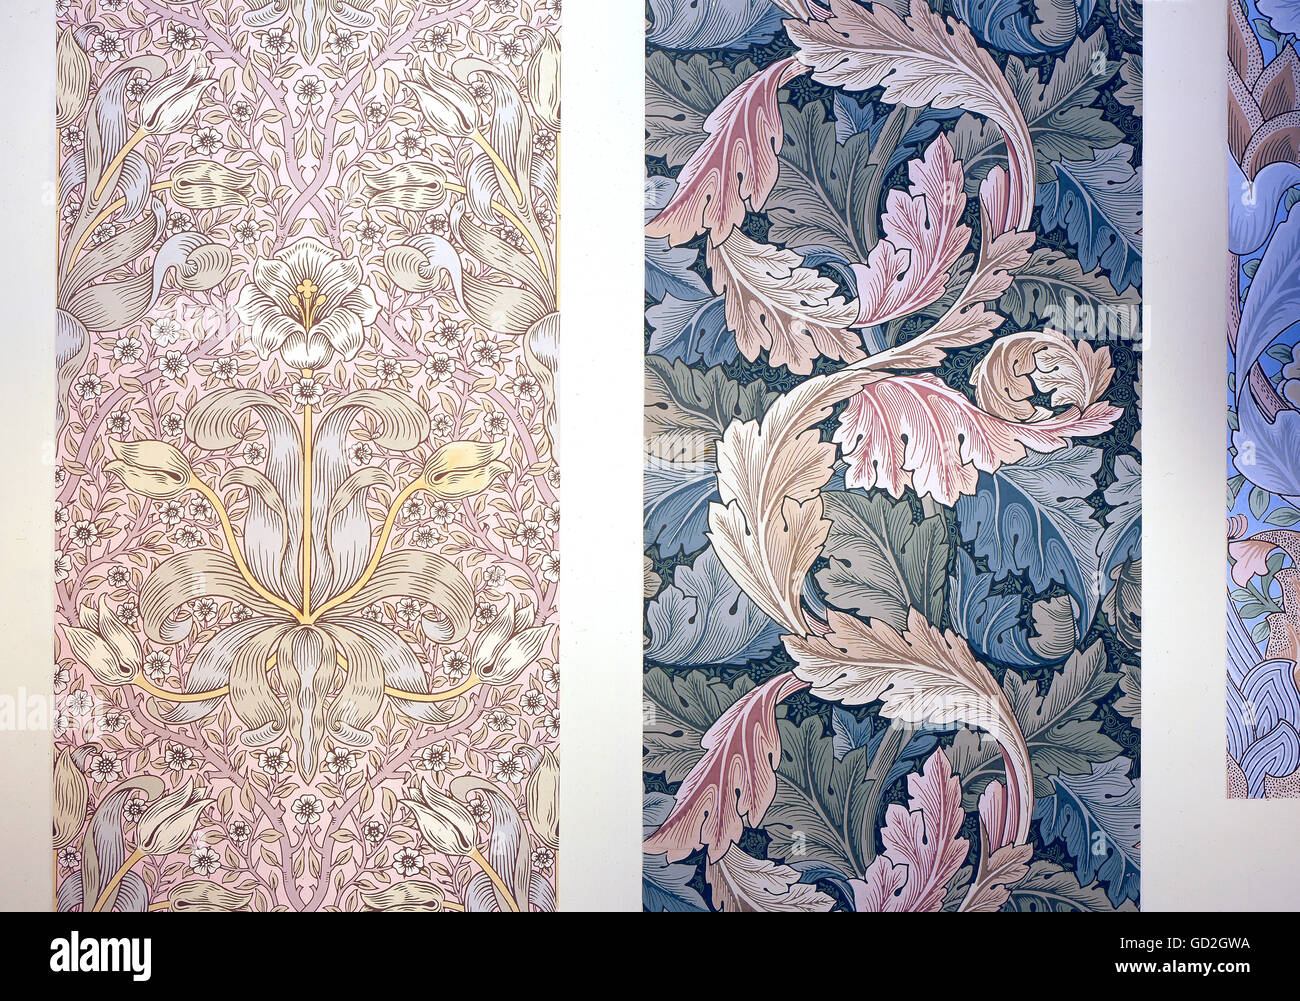 Arts Crafts Wallpaper High Resolution Stock Photography And Images Alamy